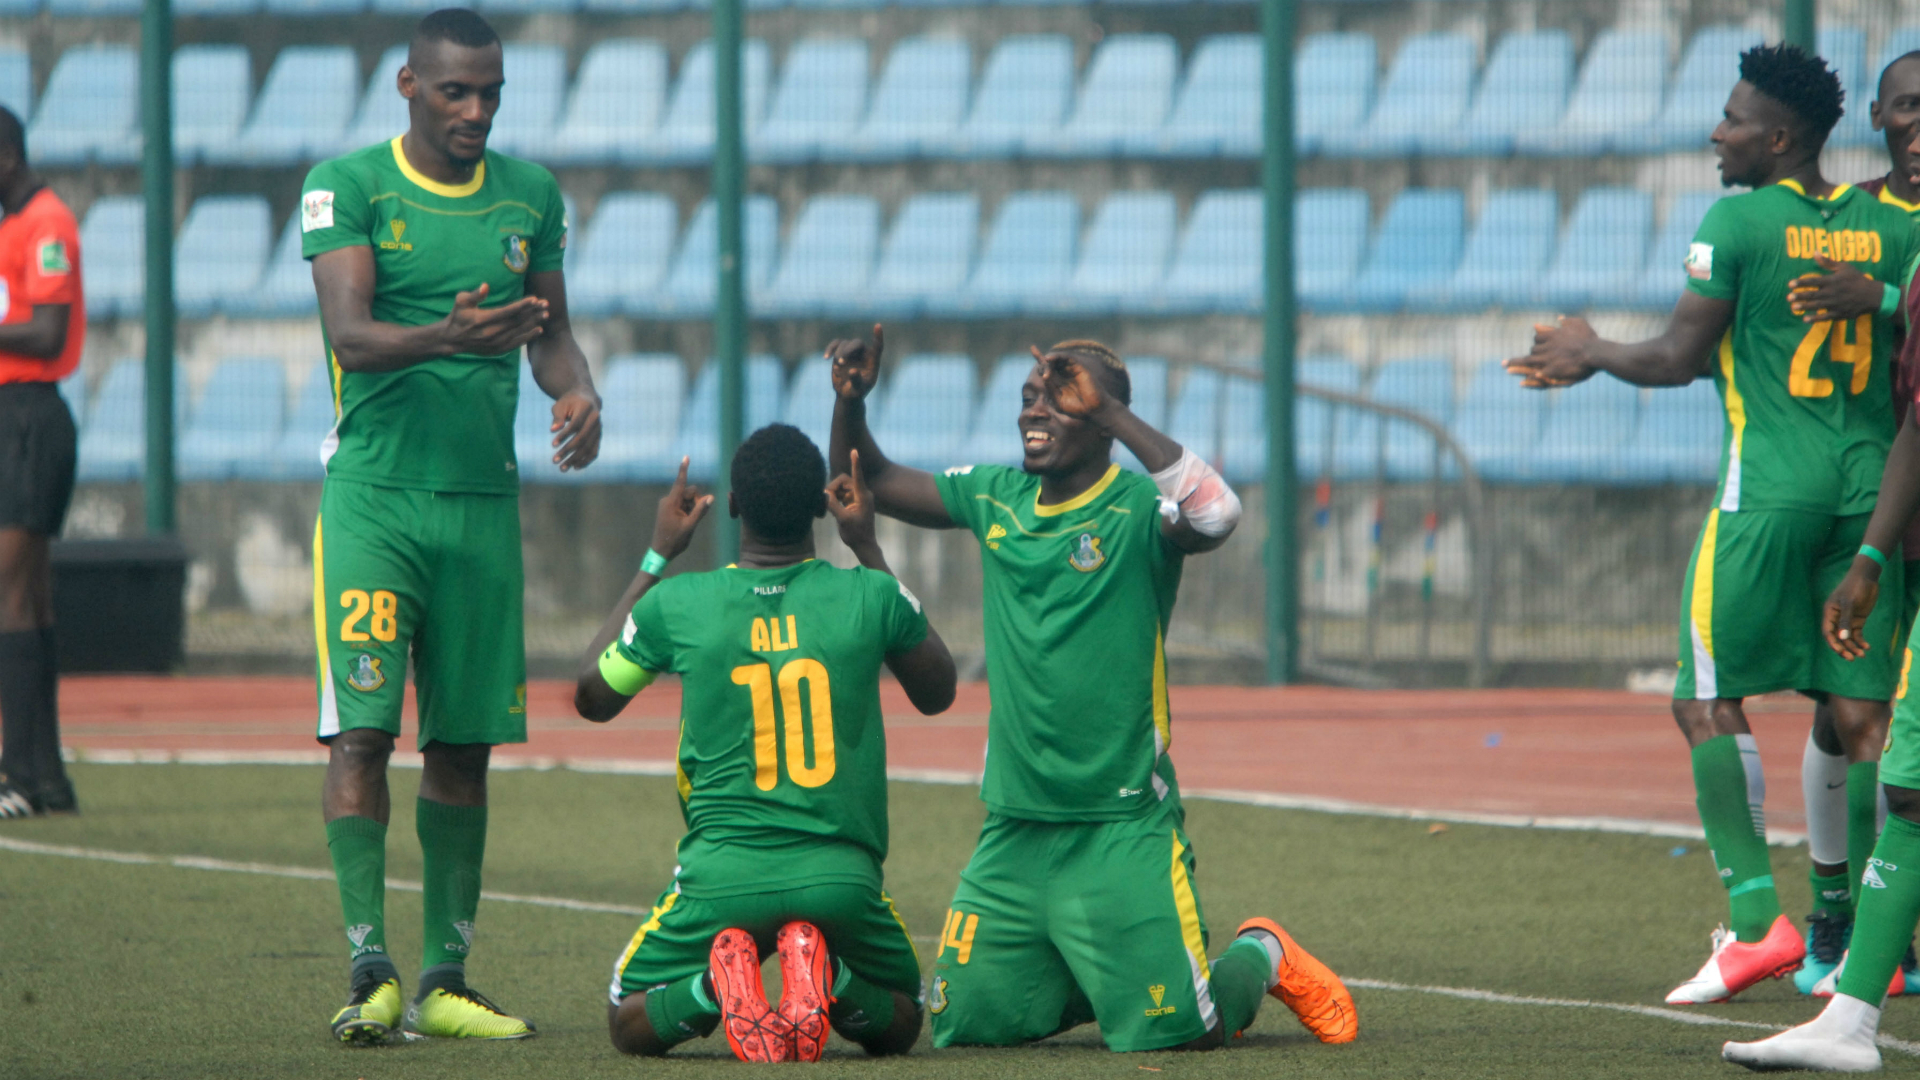 Pillars coach Musa says team will not bungle Federation cup final this year